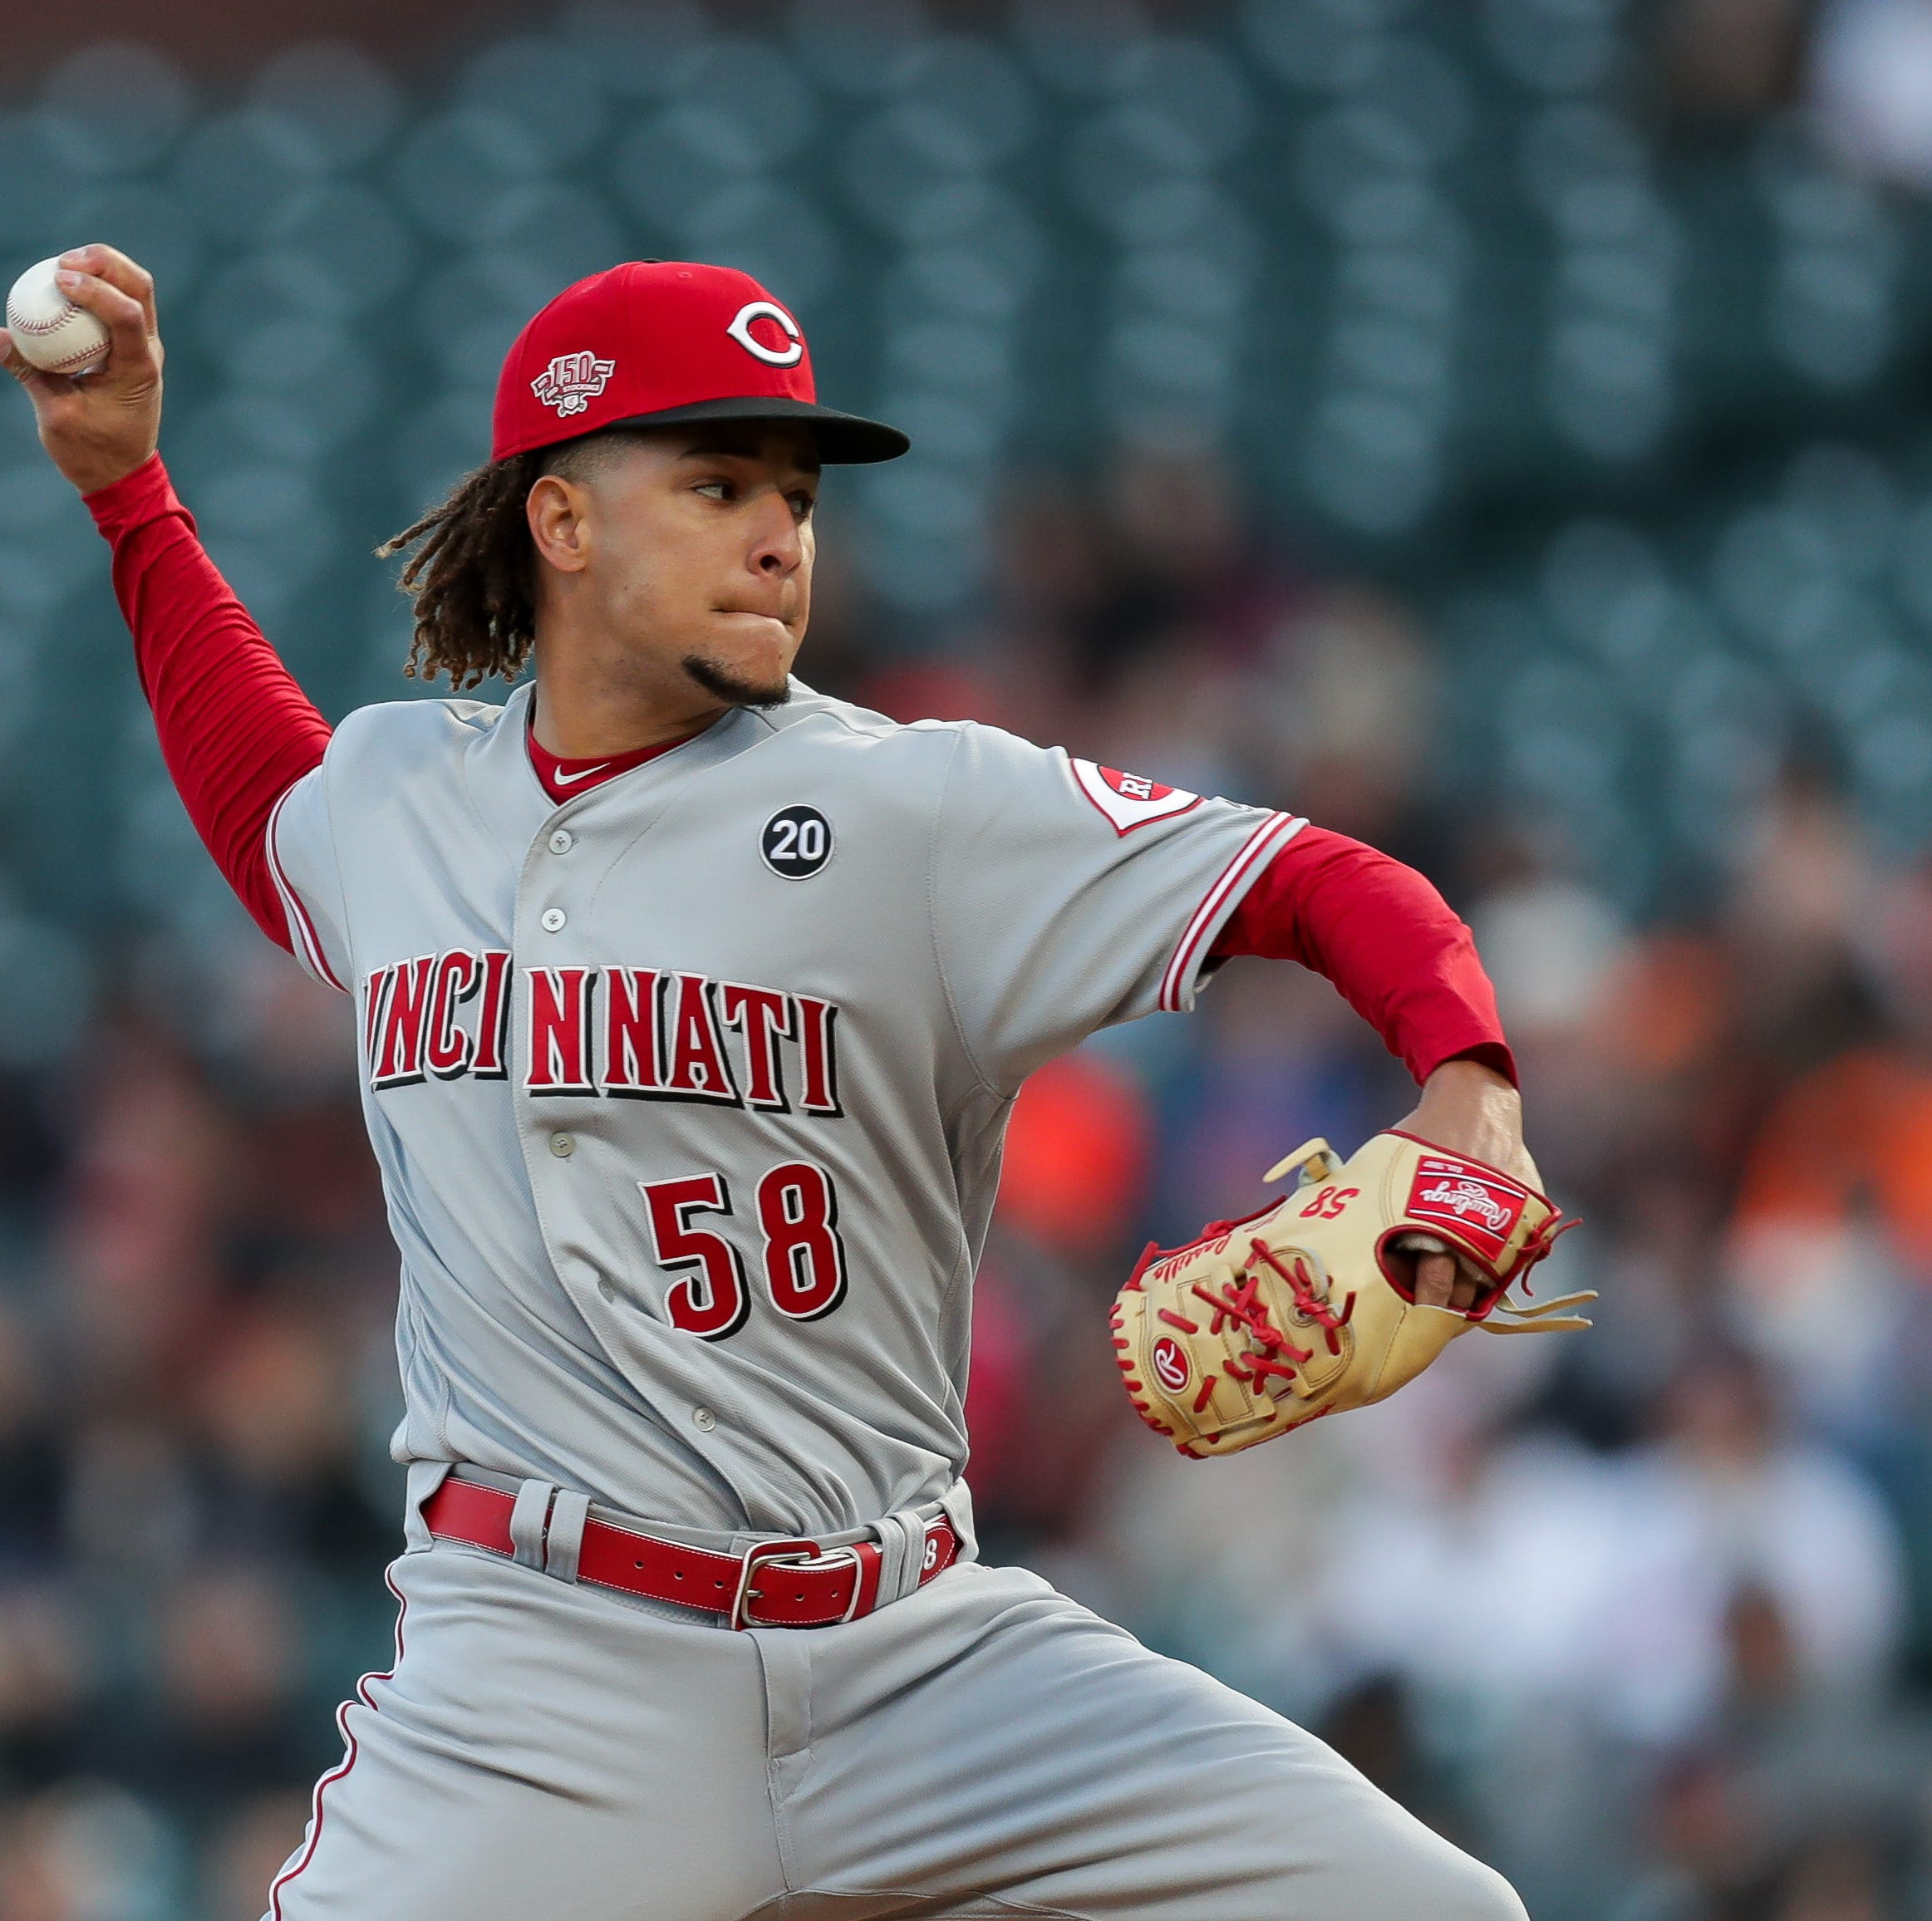 Luis Castillo continues his dominance with another scoreless start in Cincinnati Reds' win